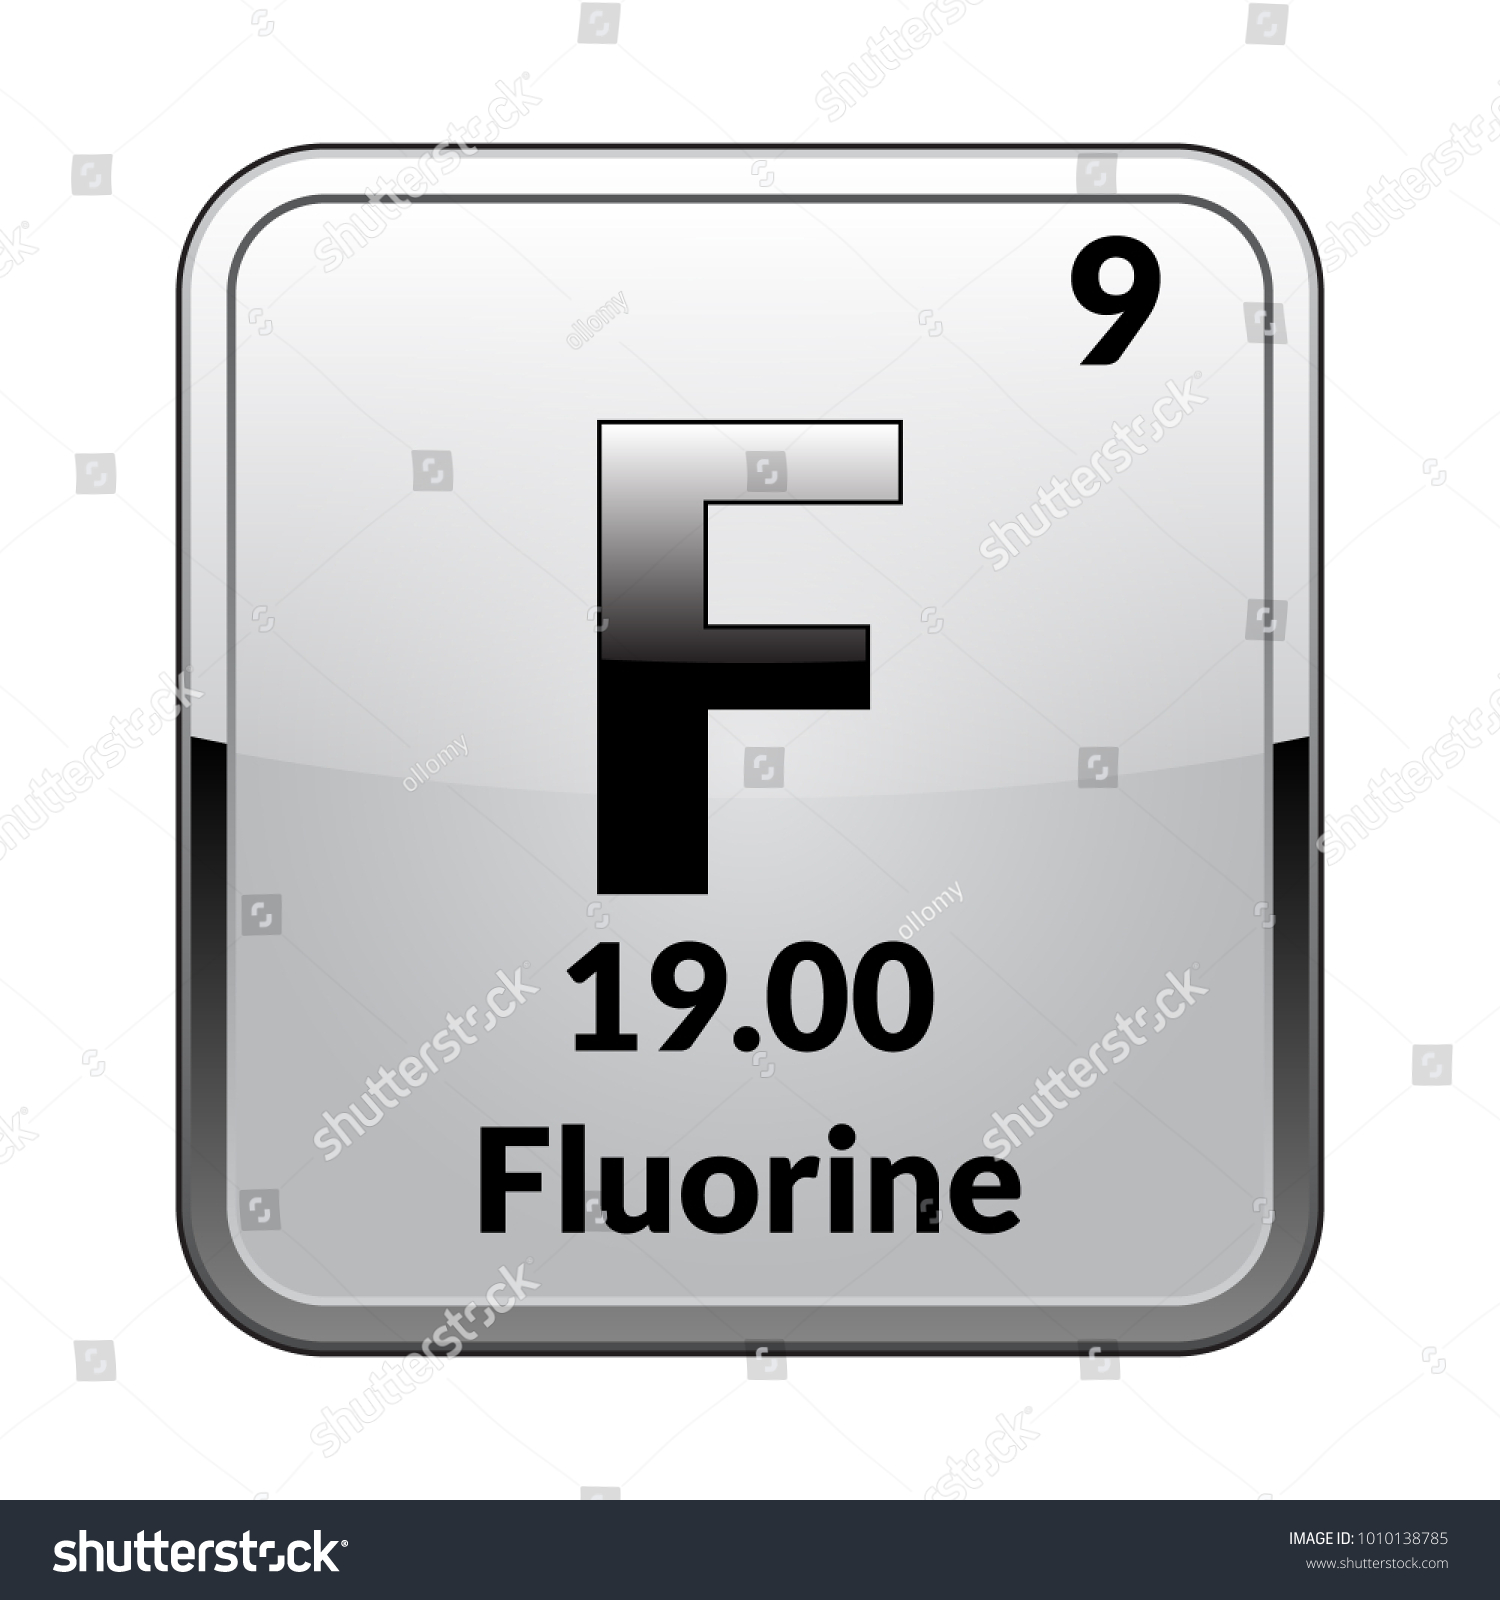 Fluorine Symbolemical Element Of The Periodic Table On A Glossy